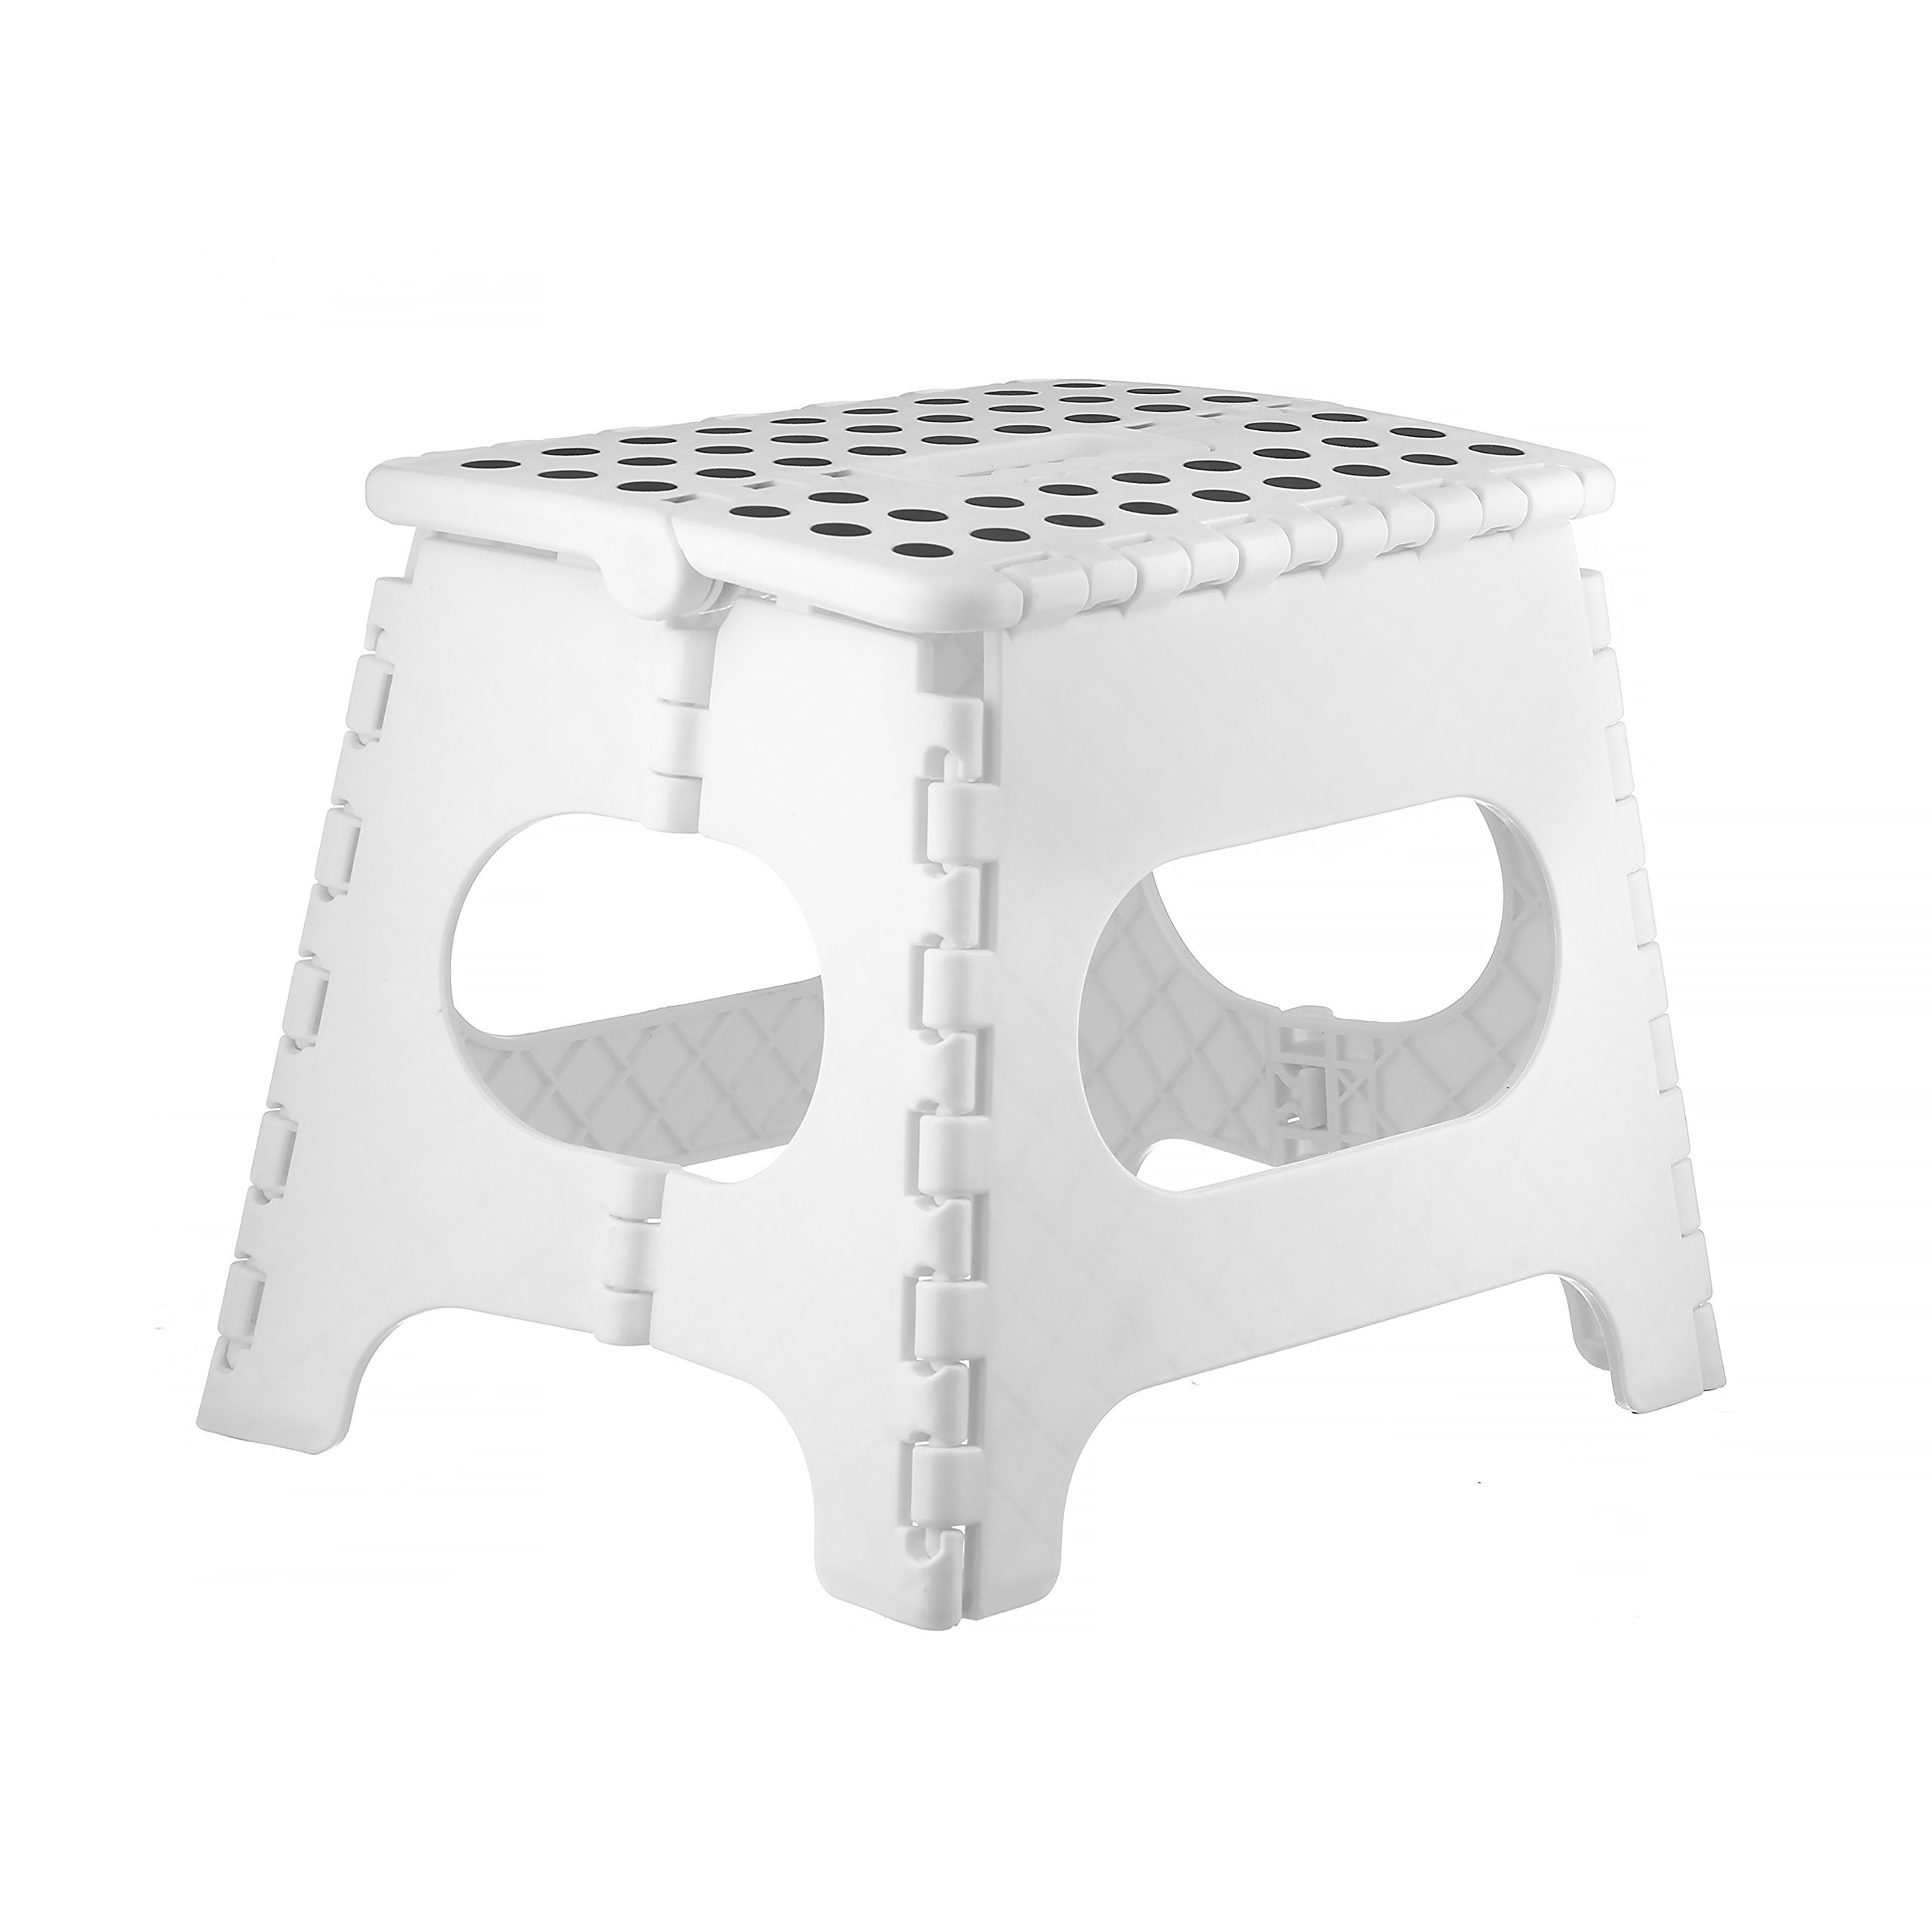 Home-it step stool Super quality Folding Step Stool for kids step stool 11 Inches.